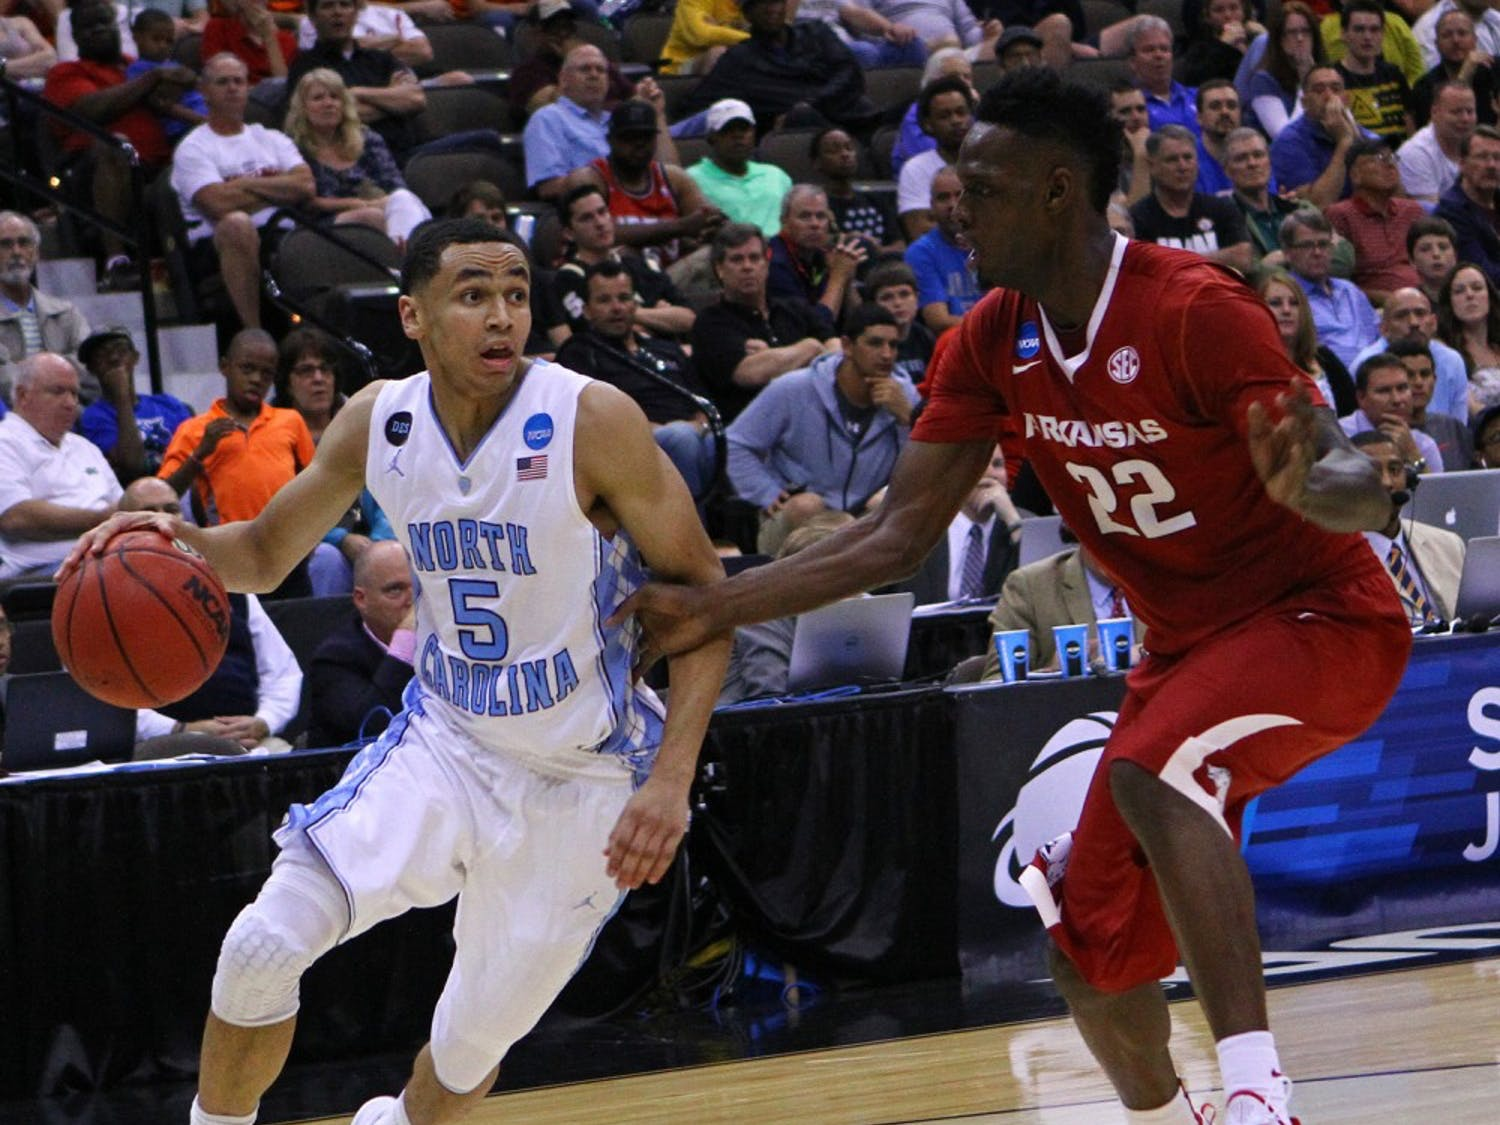 UNC guard Marcus Paige (5) drives to the basket against Arkansas player Jacorey Williams (22).The Tar Heels defeated the Arkansas Razorbacks, 87-78, on Saturday in Jacksonville, Fla.